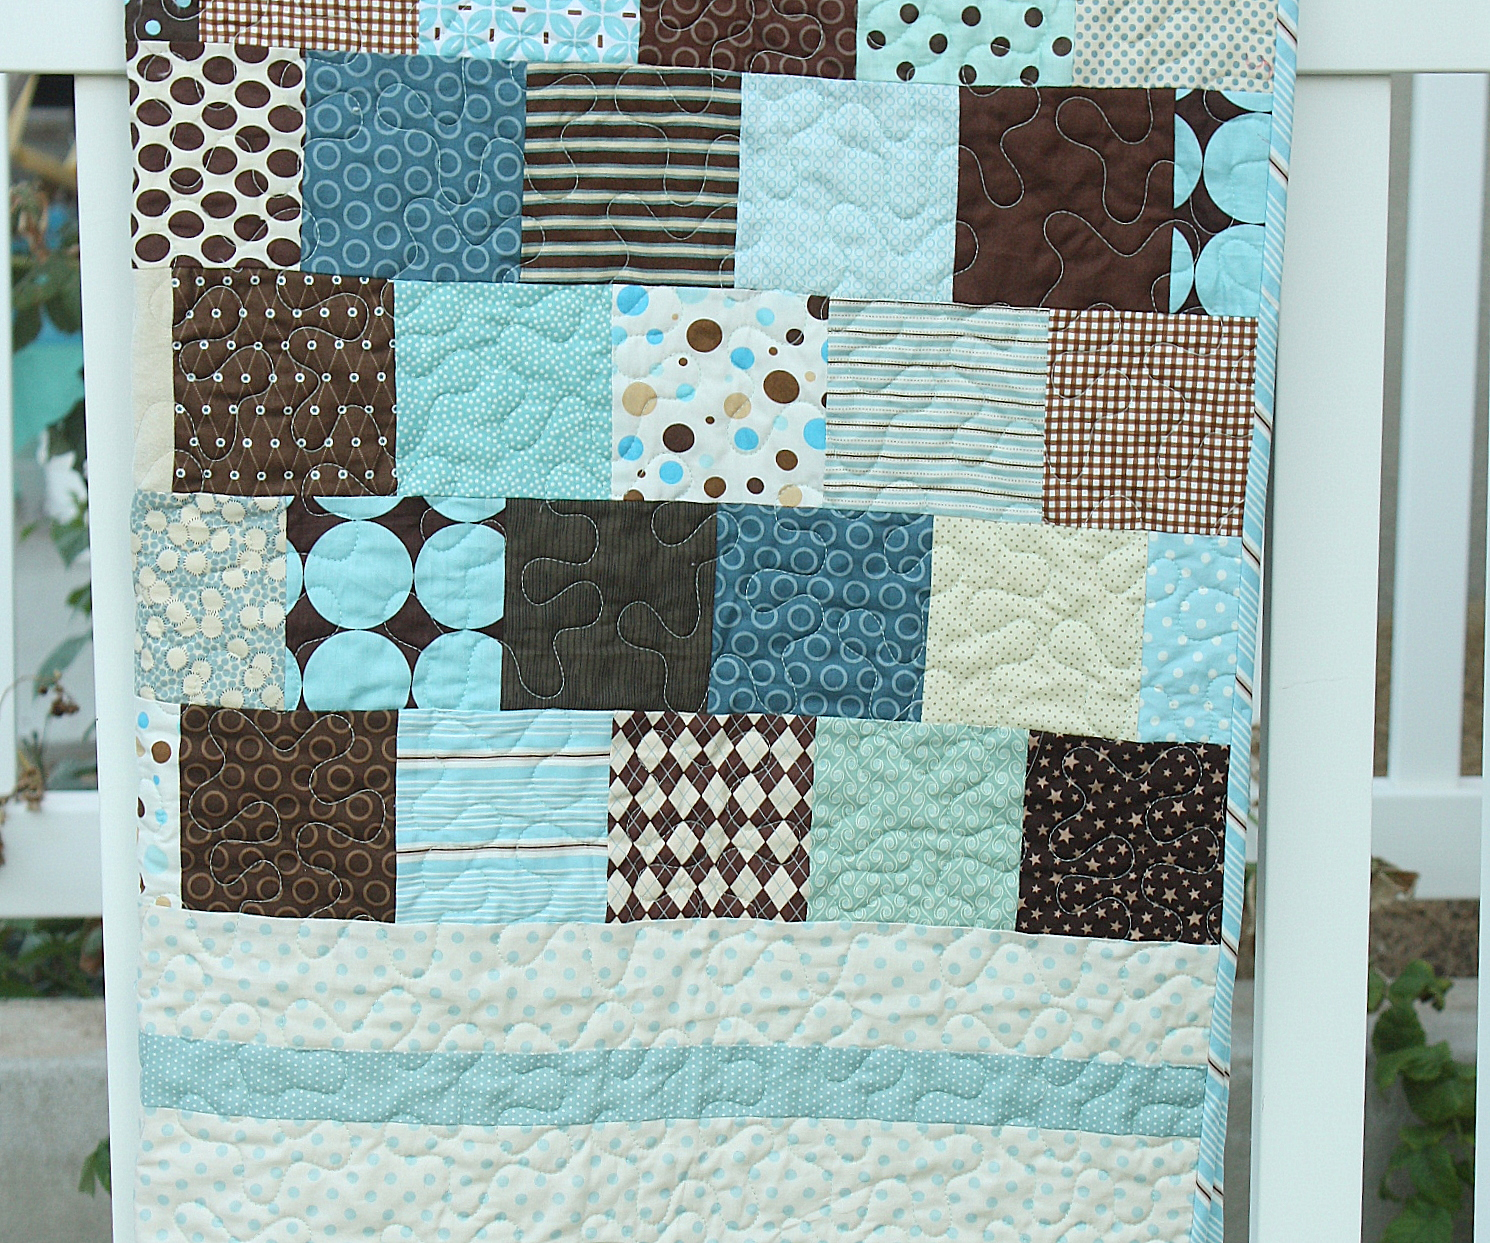 http://4.bp.blogspot.com/-qwYaQ8wLXT0/USJQ-0i-JyI/AAAAAAAAAoU/w7QojBmmX4I/s1600/brown+and+blue+quilt+close-up.JPG